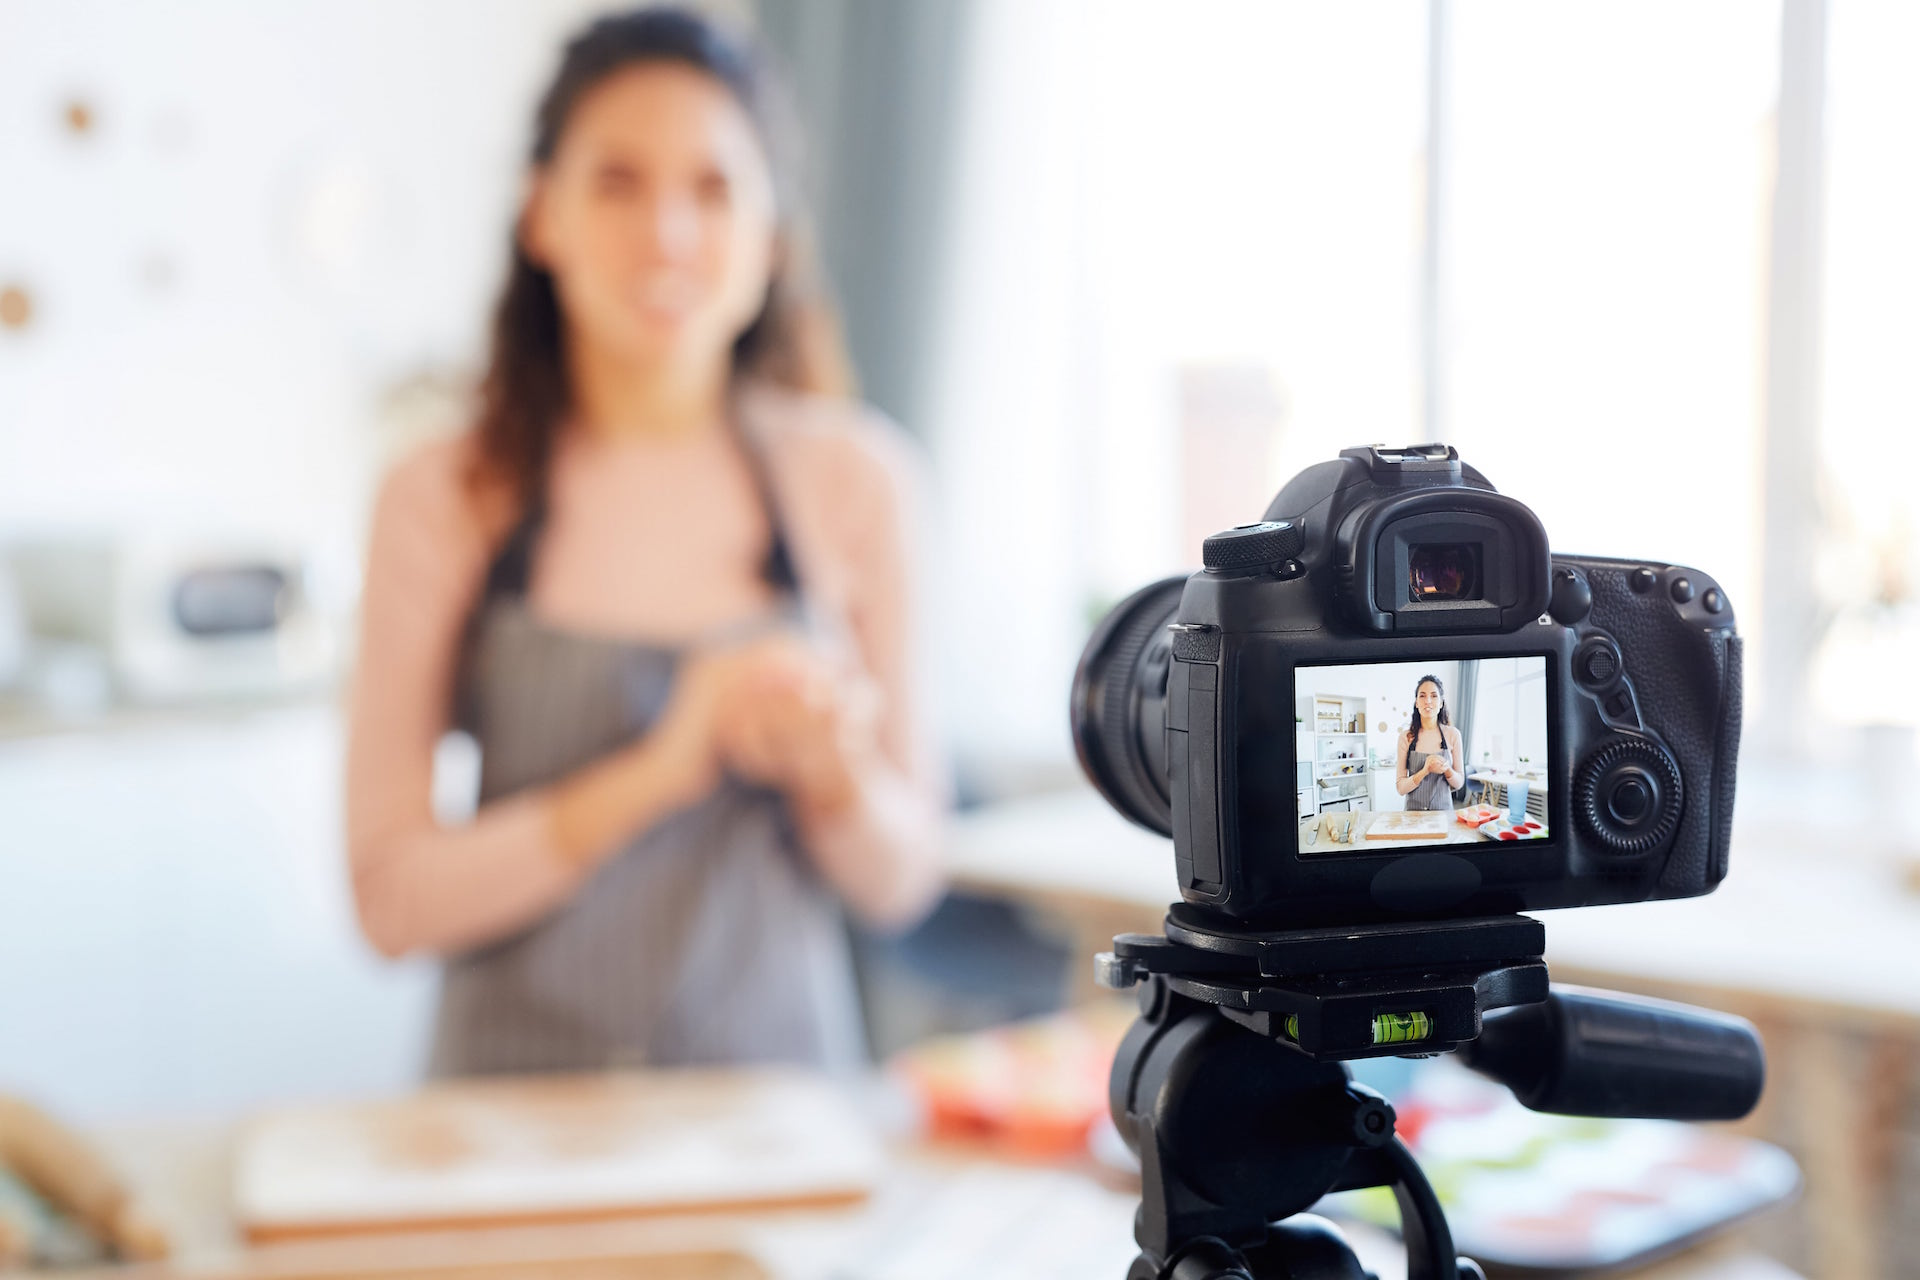 content marketing, What is Content Marketing? Your Complete Go-To Guide what is content marketing? your complete go-to guide What is Content Marketing? Your Complete Go-To Guide food blogger shooting video WZDVDLC min min